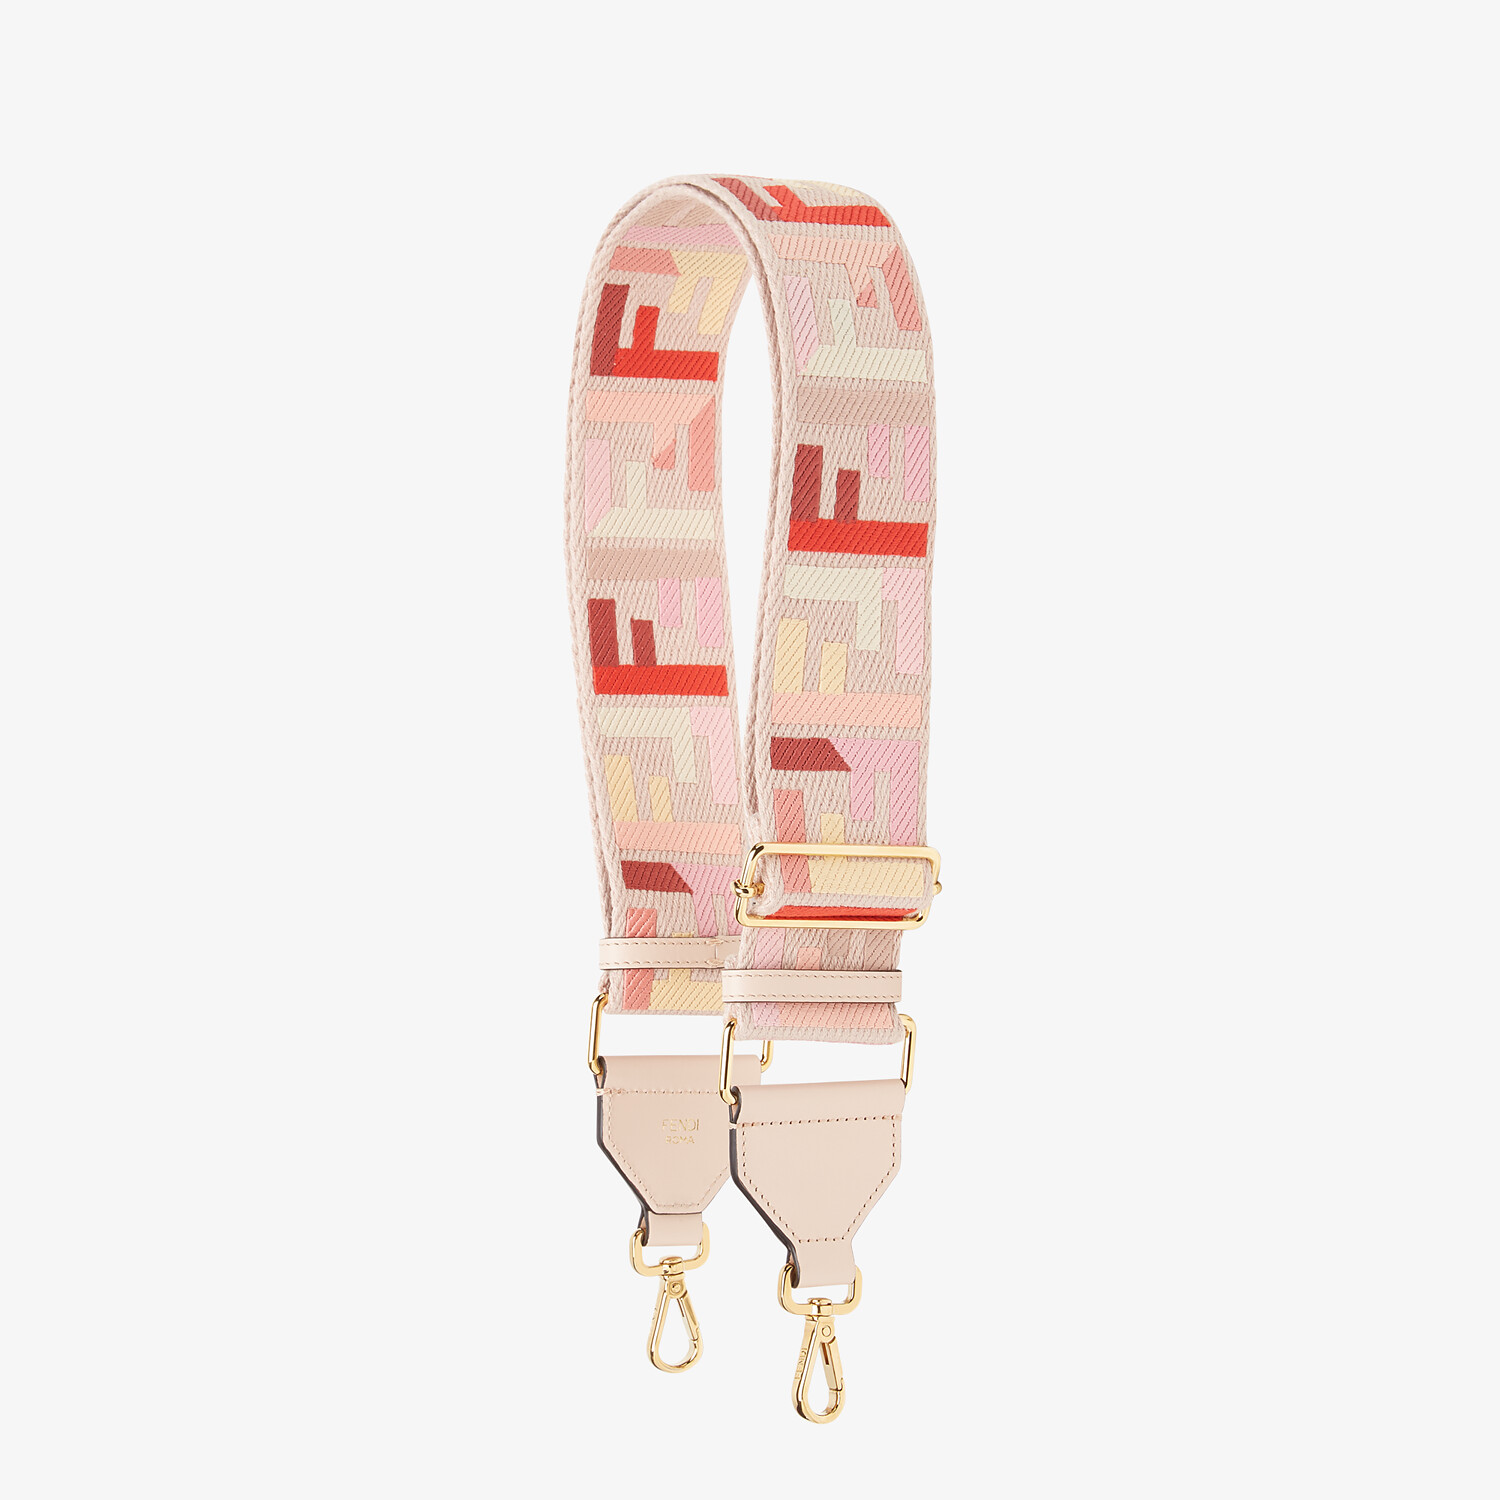 FENDI STRAP YOU - Shoulder strap from the Lunar New Year Limited Capsule Collection - view 1 detail